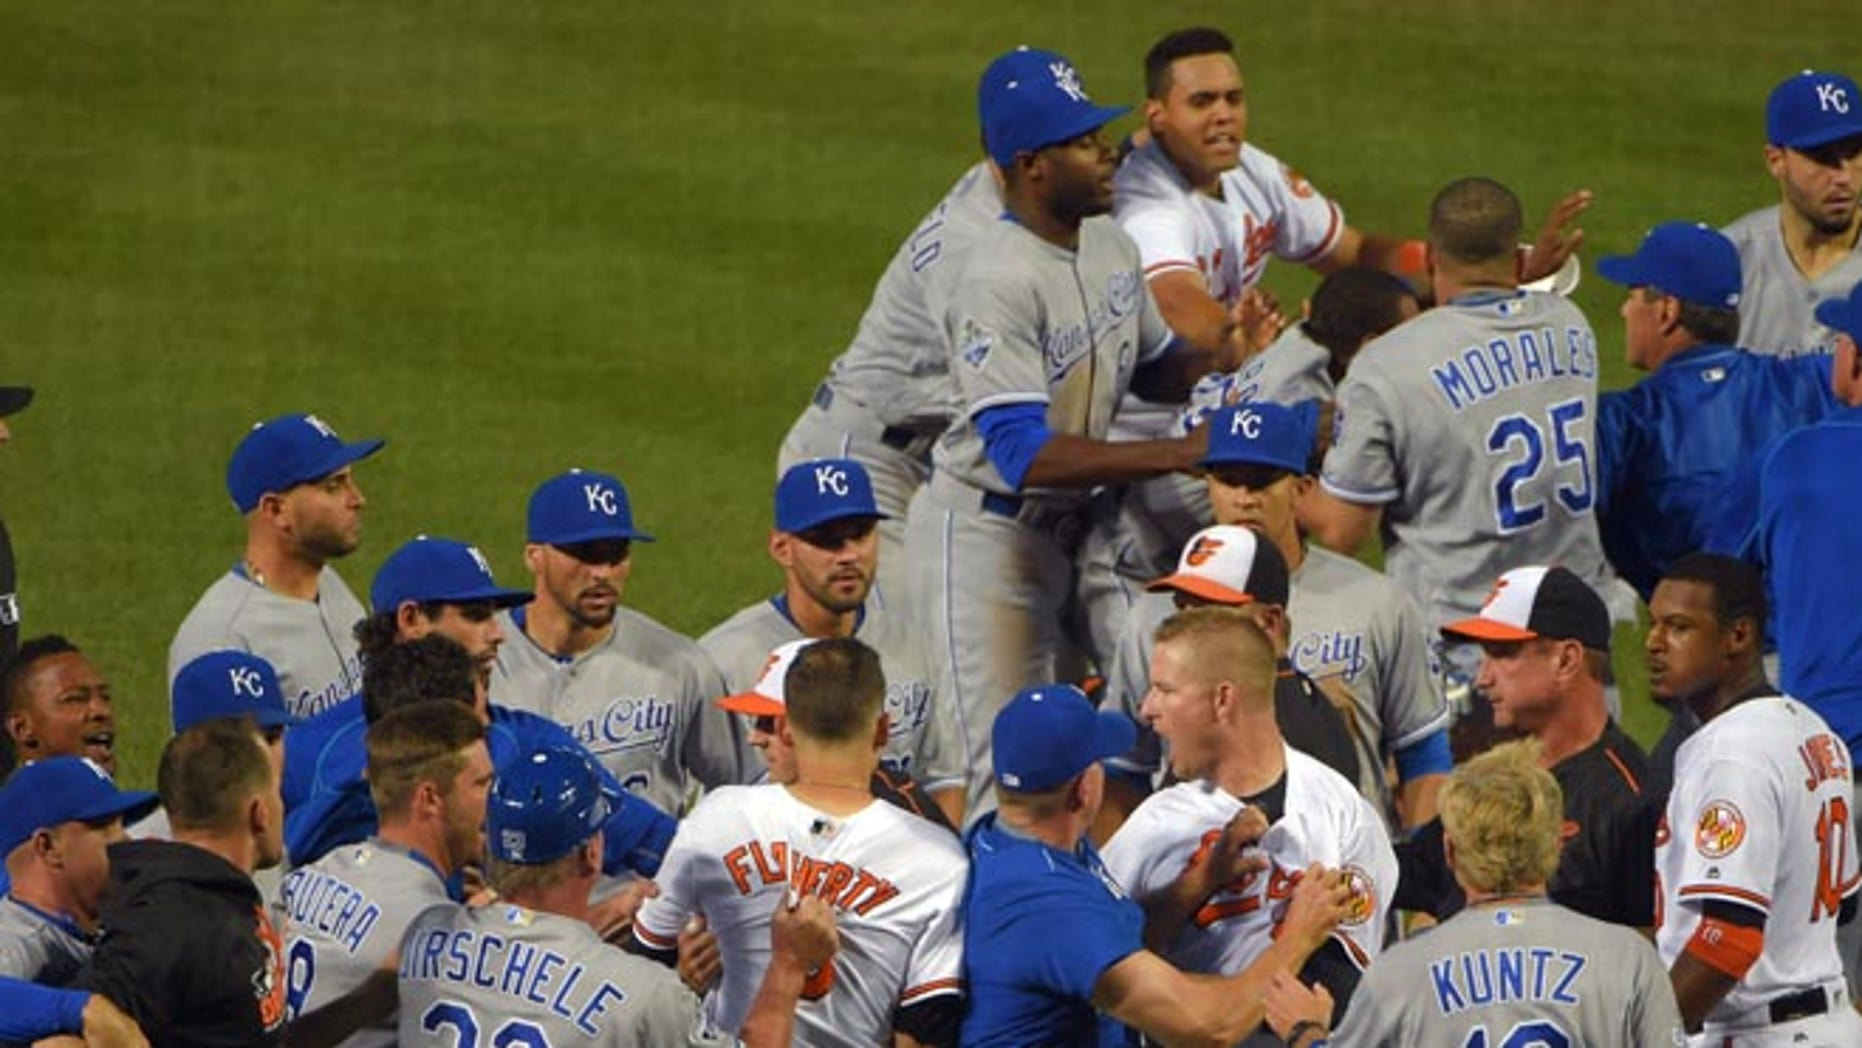 A fight breaks out between the Baltimore Orioles and Kansas City Royals after starting pitcher Yordano Ventura drilled Orioles batter Manny Machado during the fifth inning of a baseball game, Tuesday, June 7, 2016  at Camden Yards in Baltimore. (Karl Merton Ferron/The Baltimore Sun via AP)  WASHINGTON EXAMINER OUT; MANDATORY CREDIT